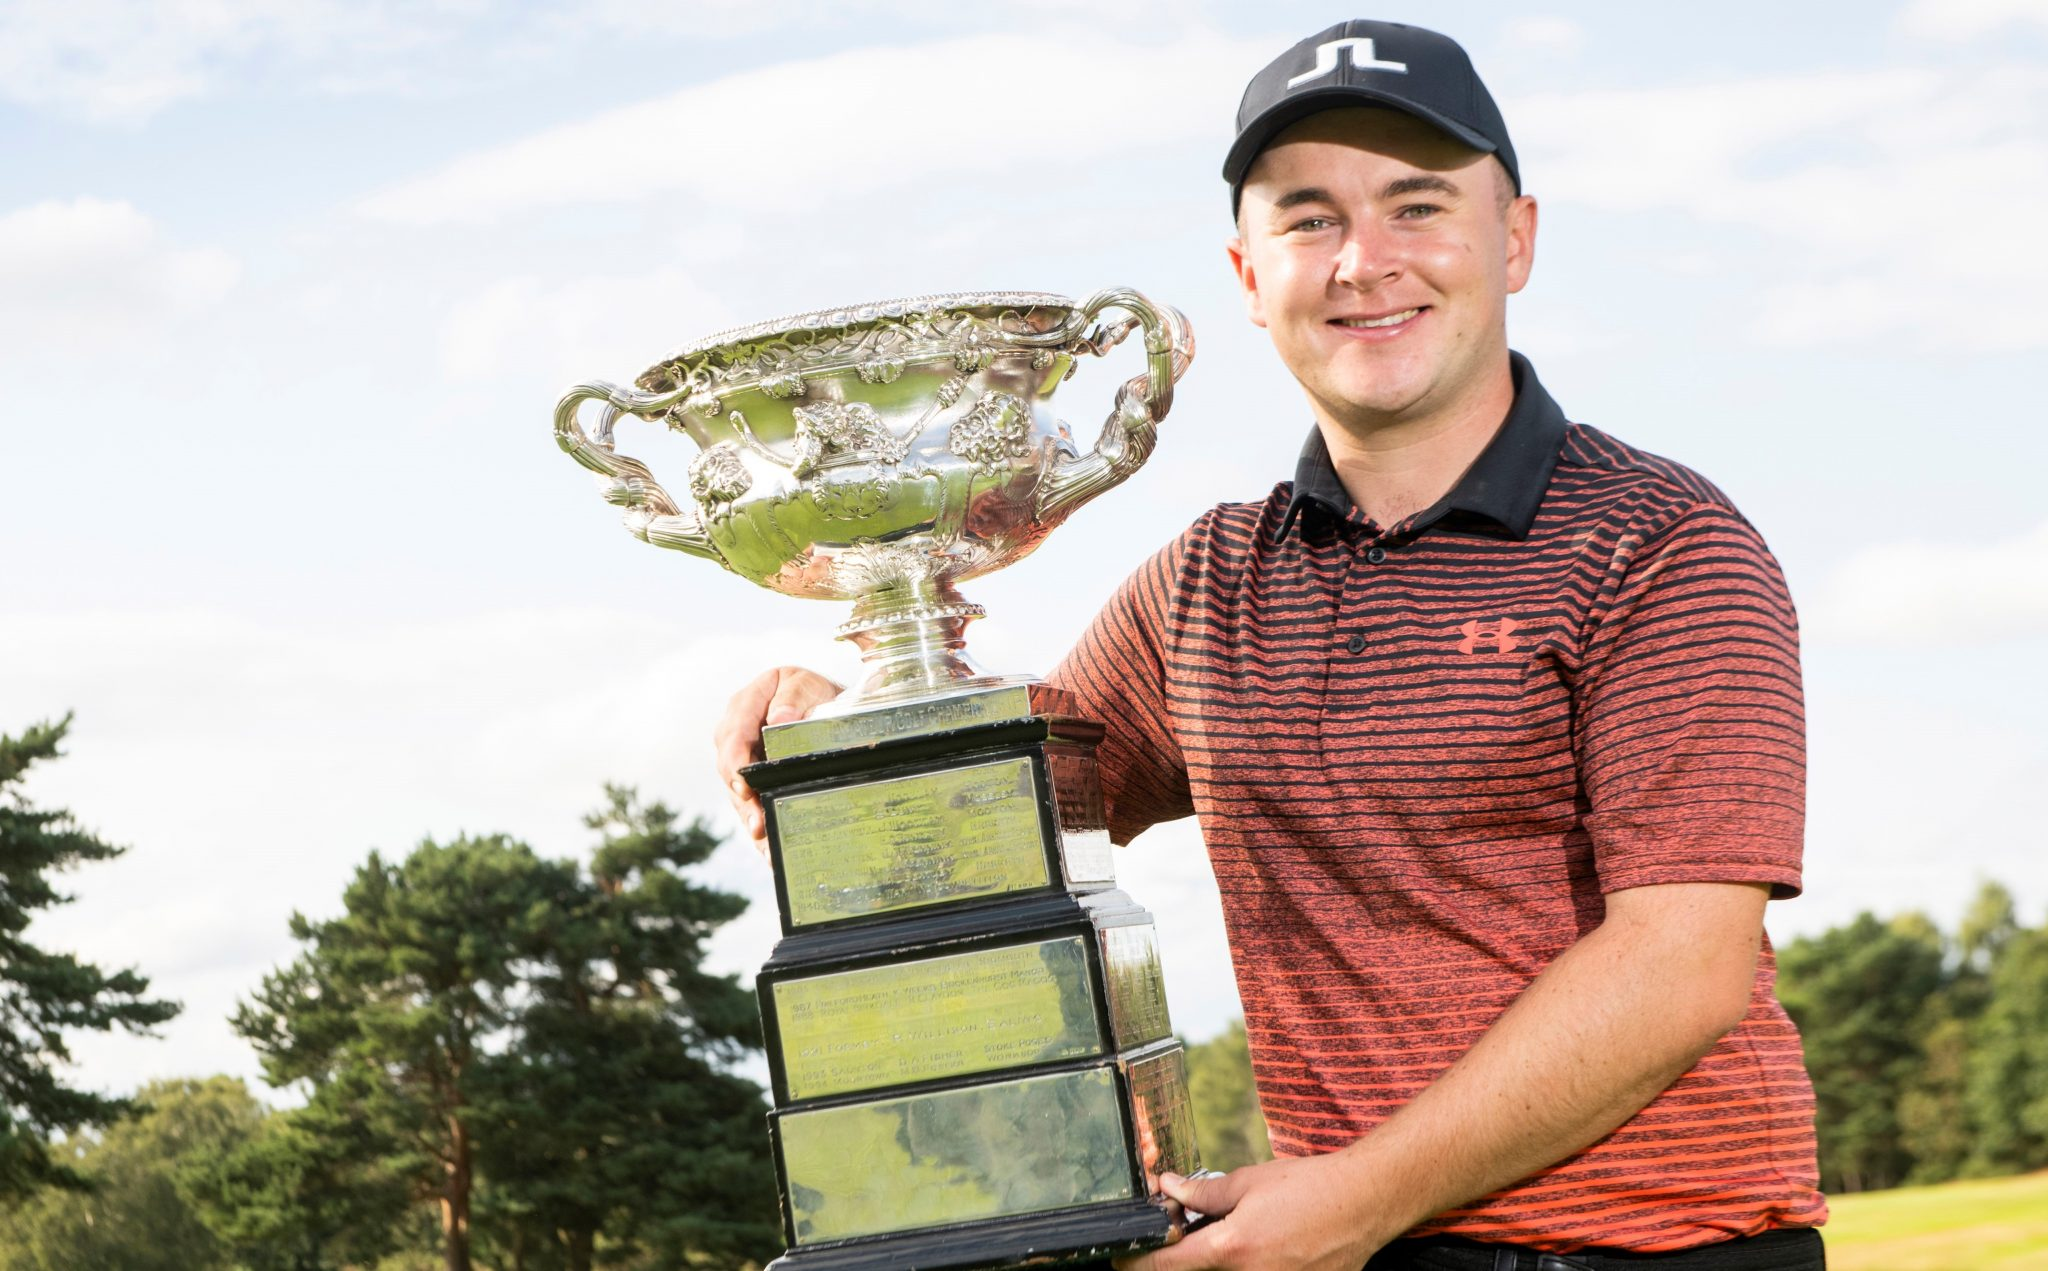 English Men's Amateur – Final: Oh brother! Champion John's joy at matching Conor